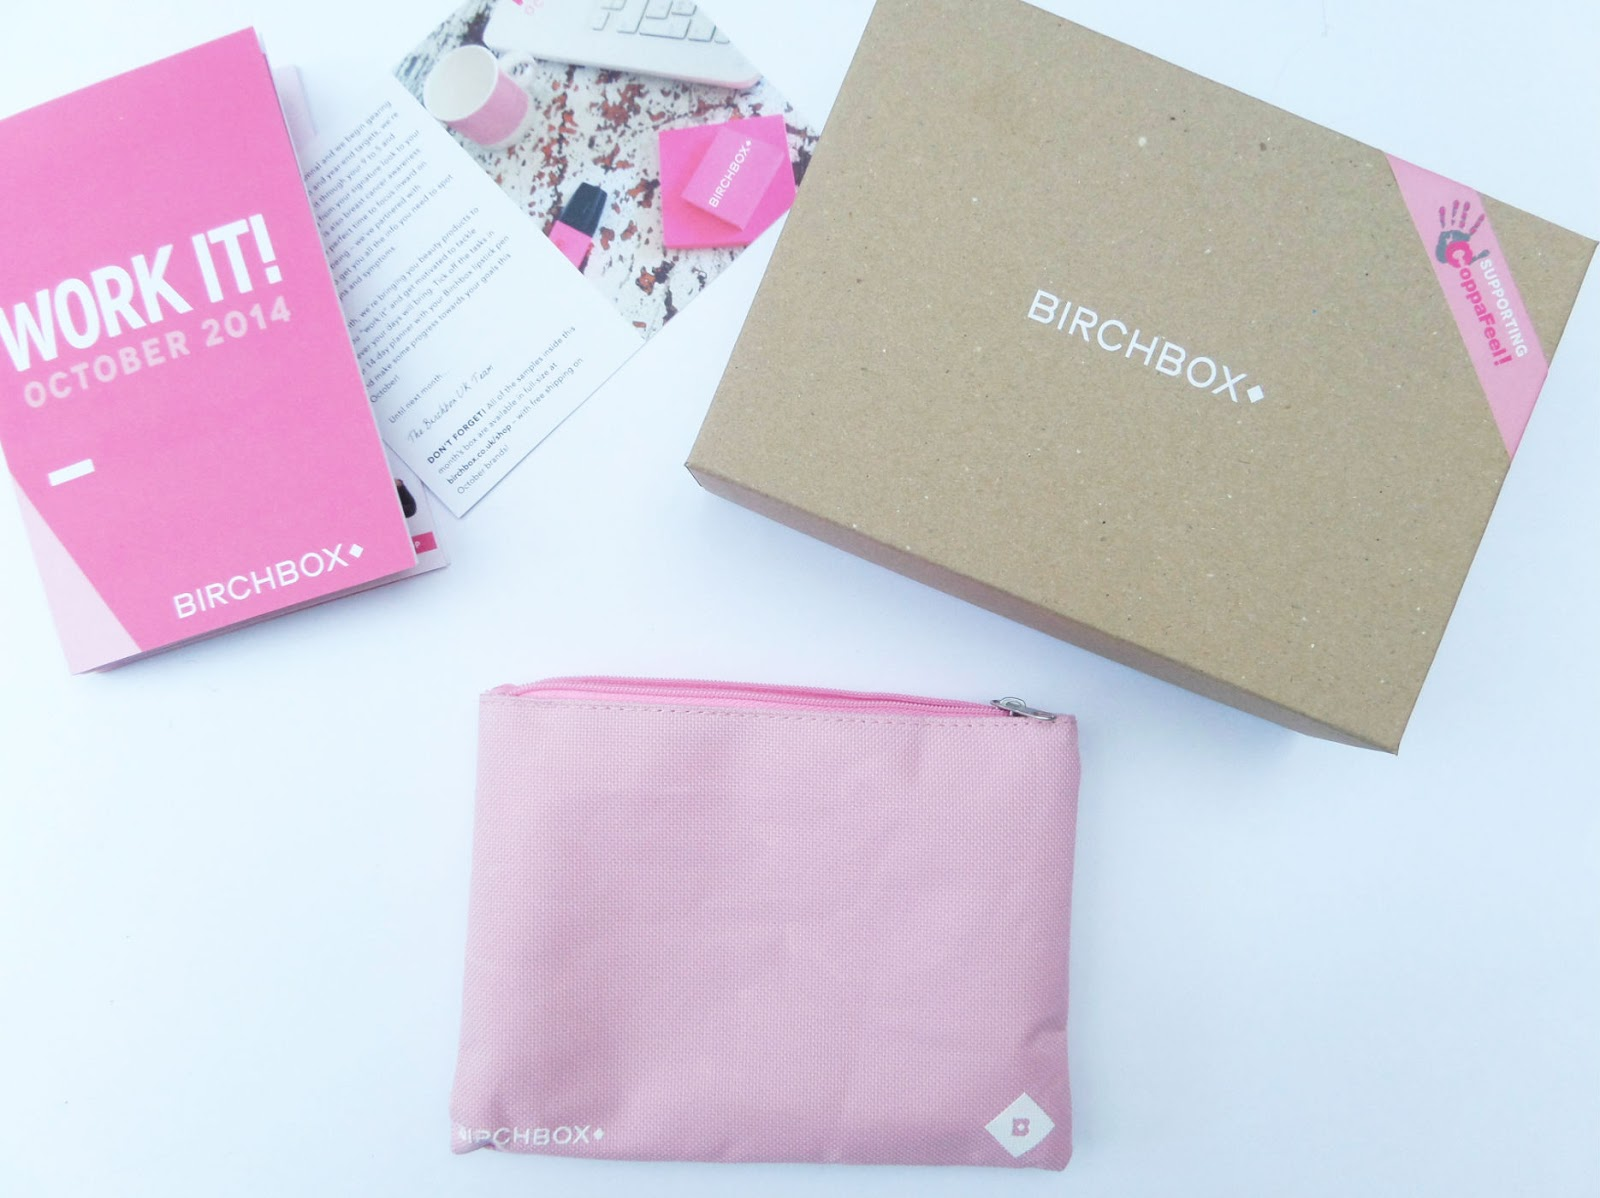 The October 2014 Birchbox | Work It | With CoppaFeel